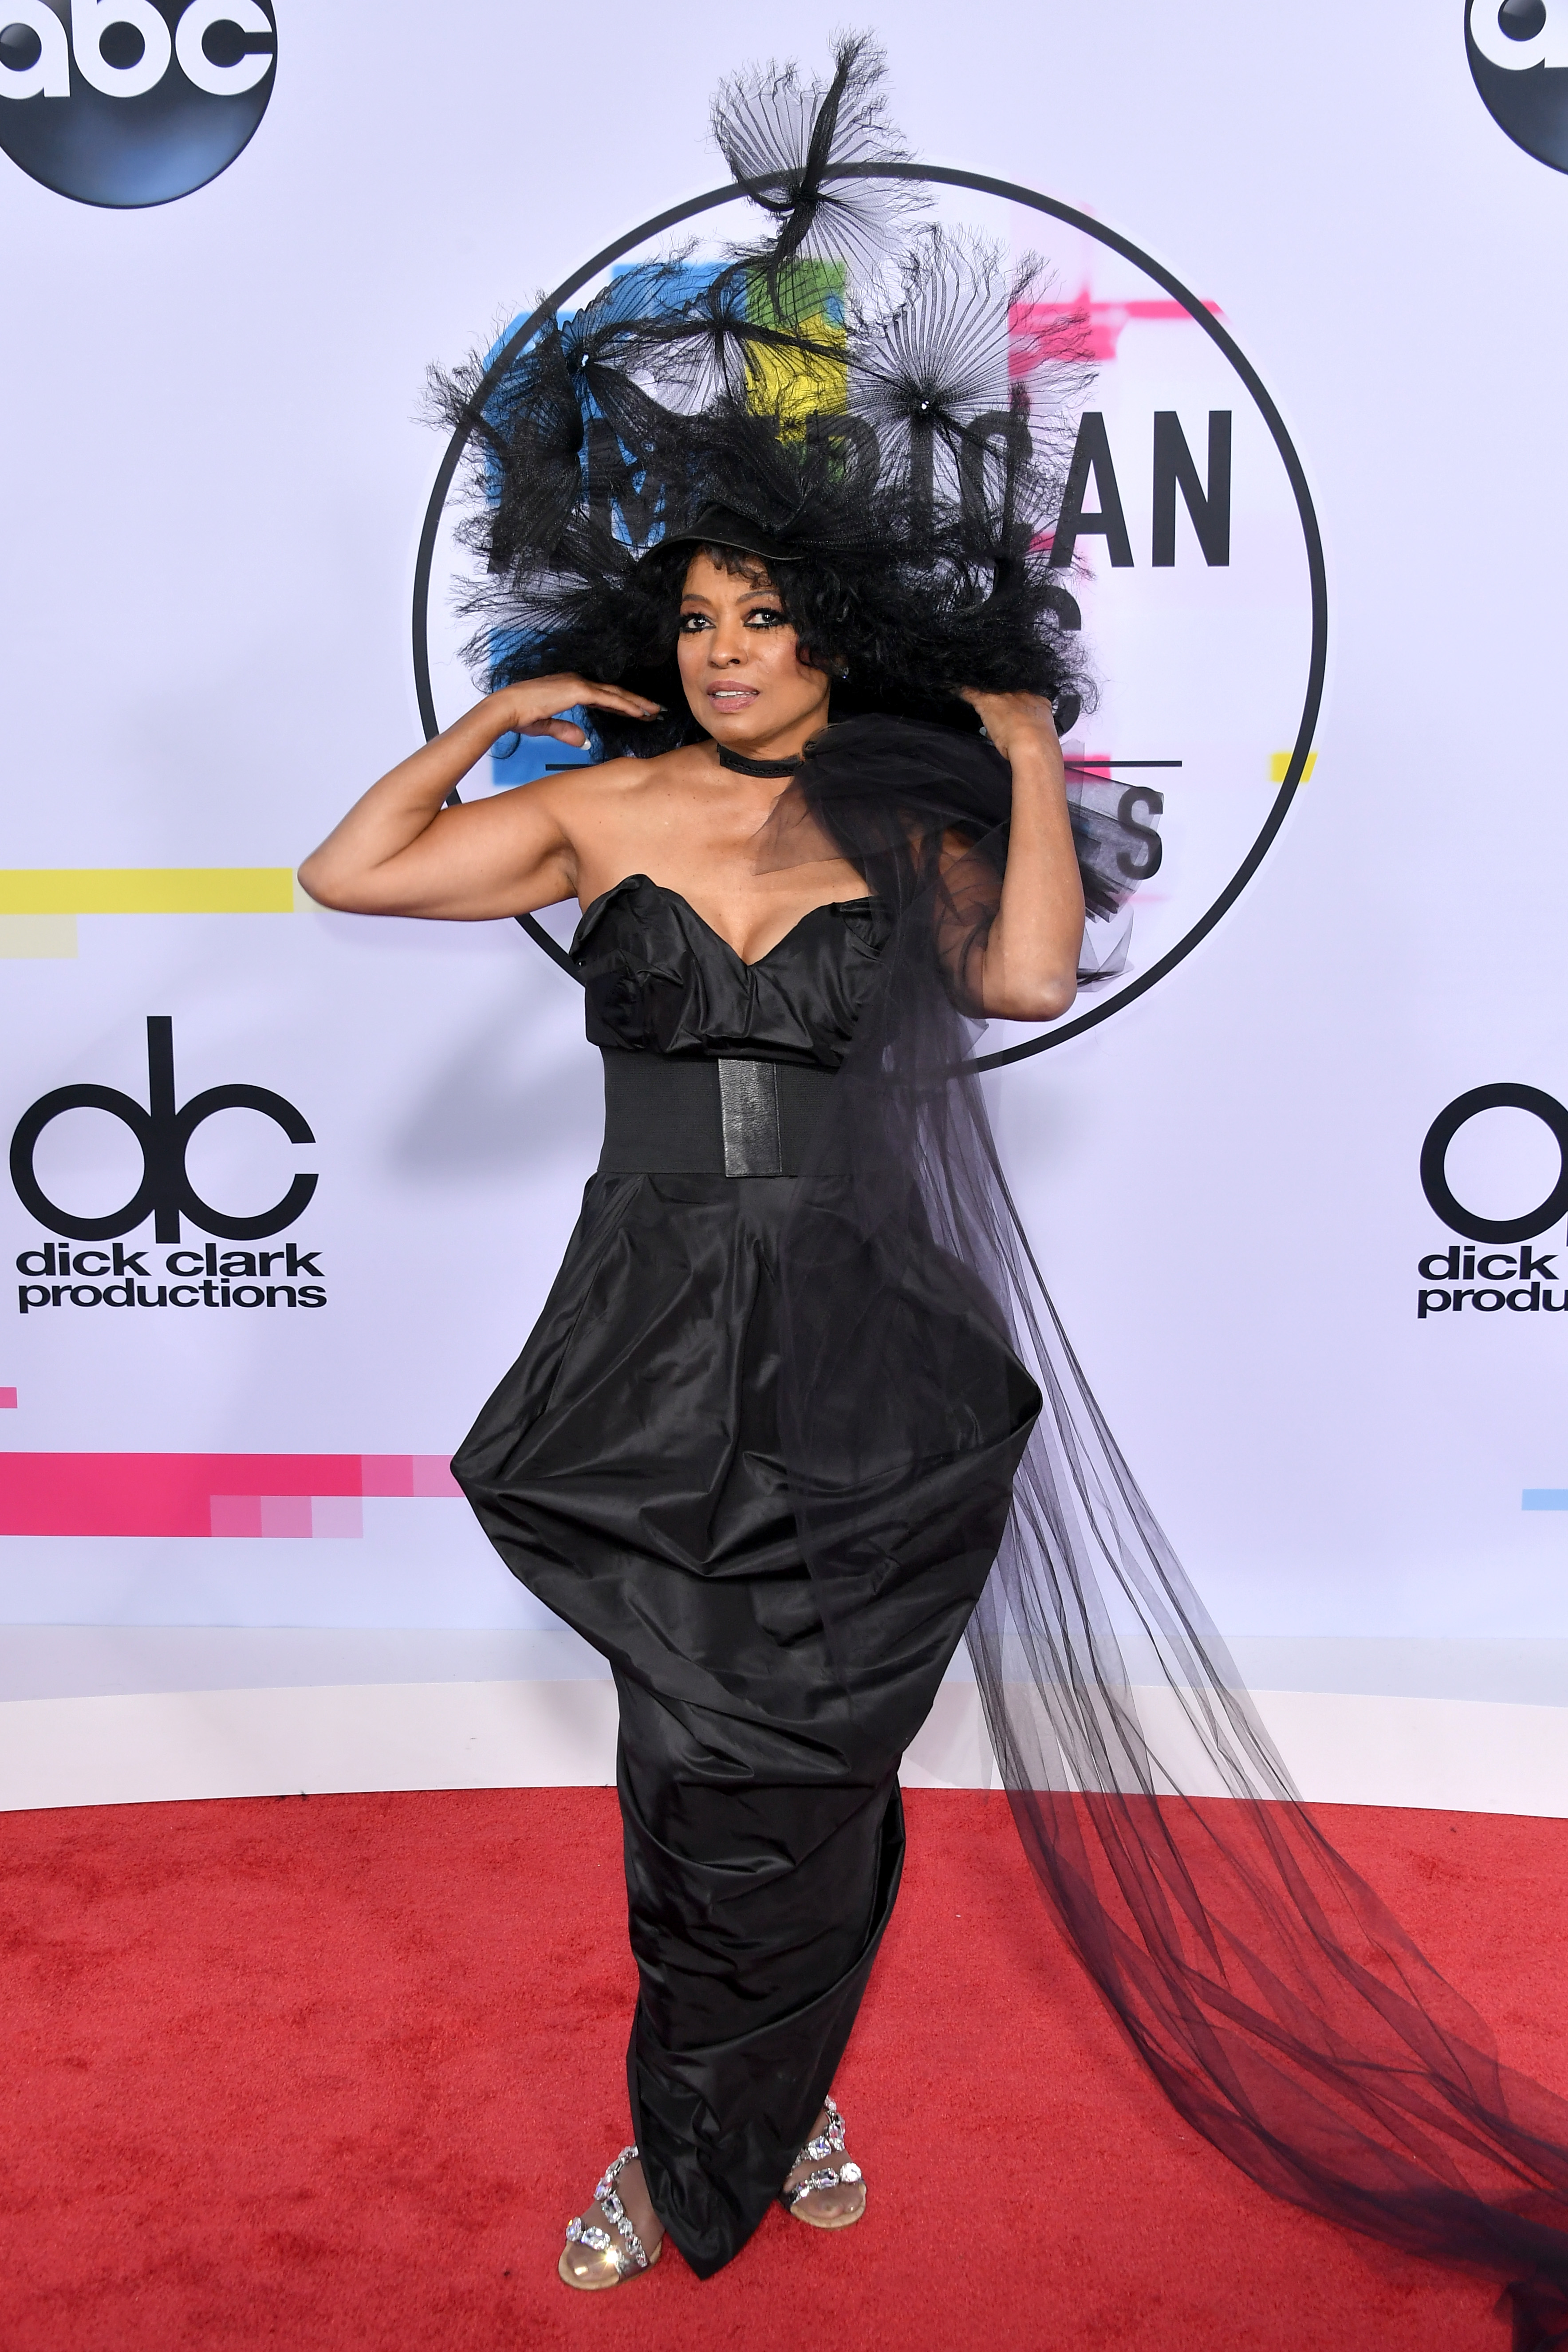 <p>The American Music Awards are like Christmas for Hollywood stylists as pop stars and Insta-celebrities abandon all dress codes and wear whatever they want.</p> <p>Think Britney Spears and Justin Timberlake's infamous attempt at double denim in 2001 and Chrissy Teigen's skin-baring Yousef Akbar ensemble in 2016.</p> <p>But this year's attendees seem to be marching to the beat of a different sartorial drum.</p> <p>Legendary singer Diana Ross is the recipient of this year's Lifetime Achievement and chose to mark the occasion in a bizarre all-black ensemble complete with an over-sized fascinator. </p> <p>Despite looking like she is dressed for her own funeral, with an army of family members including singer Ashlee Simpson Ross and daughter Tracee Ellis Ross (who is also this year's AMAs host) serving as her best accessories, Ross's red carpet appearance may be the most memorable of the night.</p> <p>That said, there was a powerful, sleek all-leather look by a newly-blonde Selena Gomez that managed to catch our attention in the mix as well.</p> <p>Here are the most stylish, outrageous and intriguing ensembles on the red carpet at the 2017 American Music Awards.</p>